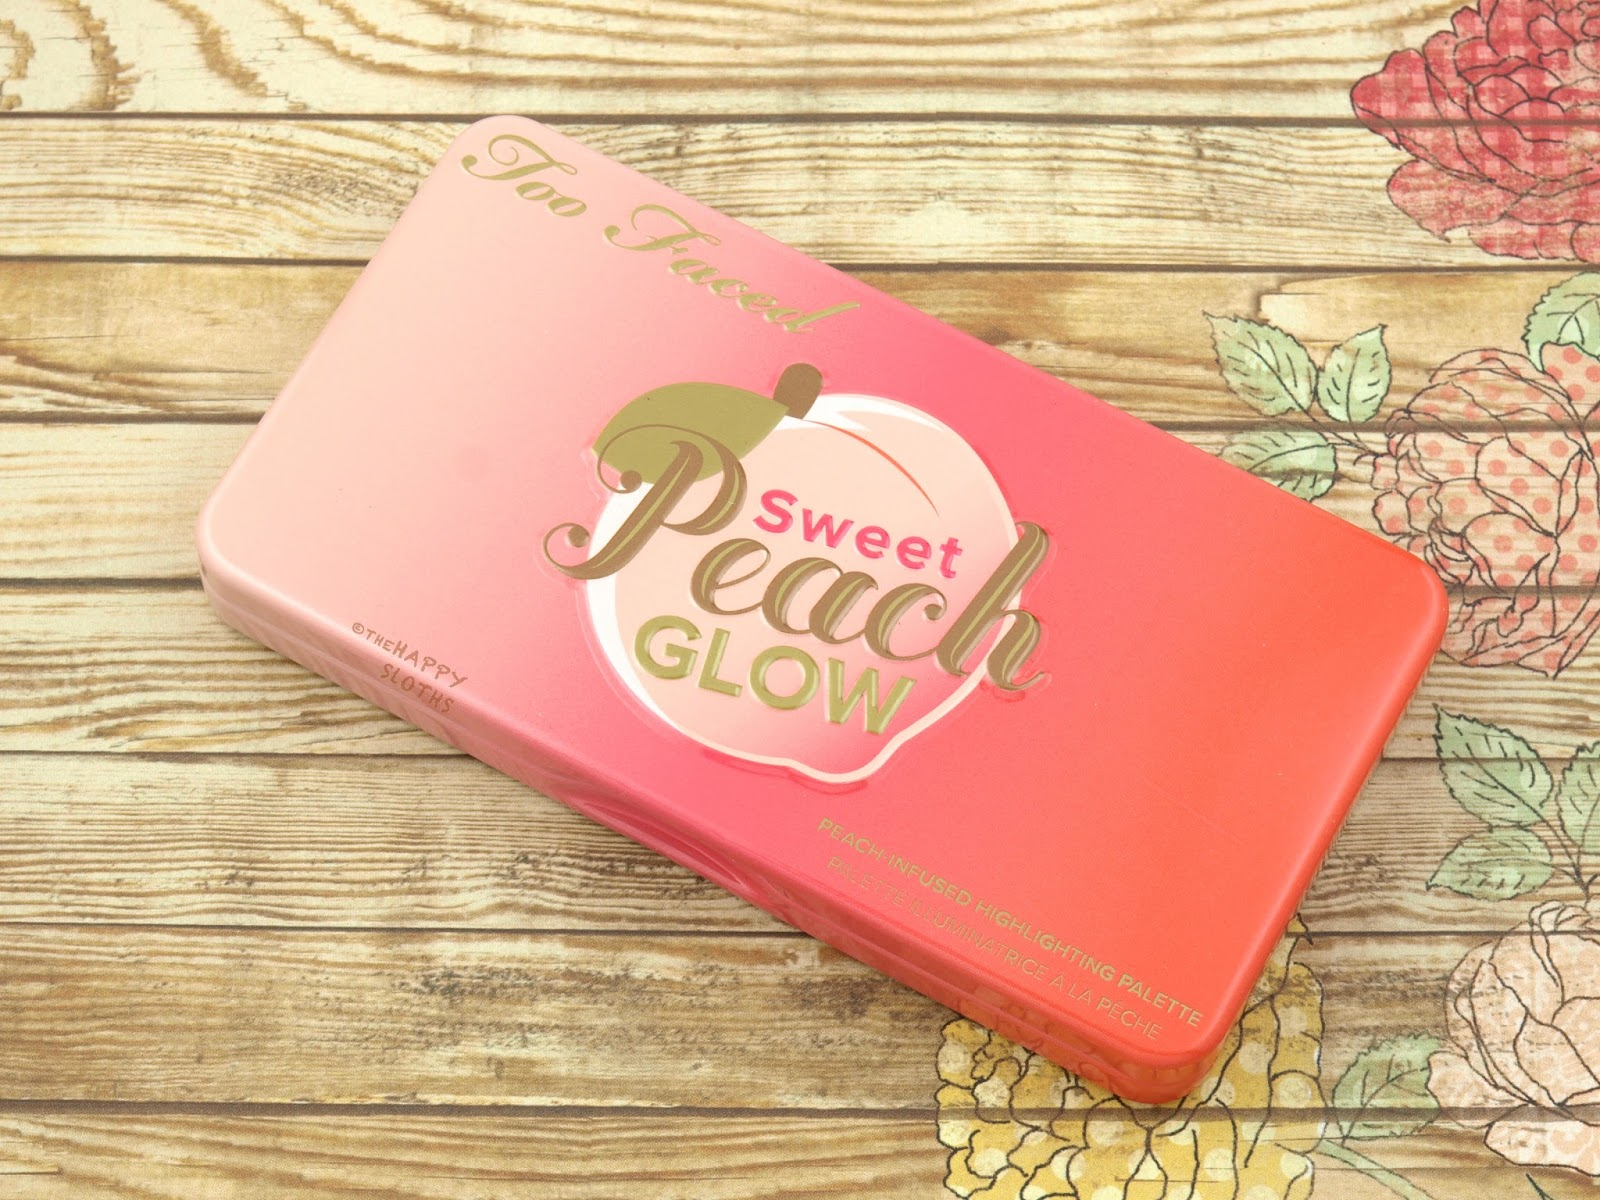 Too Faced Sweet Peach Glow Peach-Infused Highlighting Palette Swatches Review